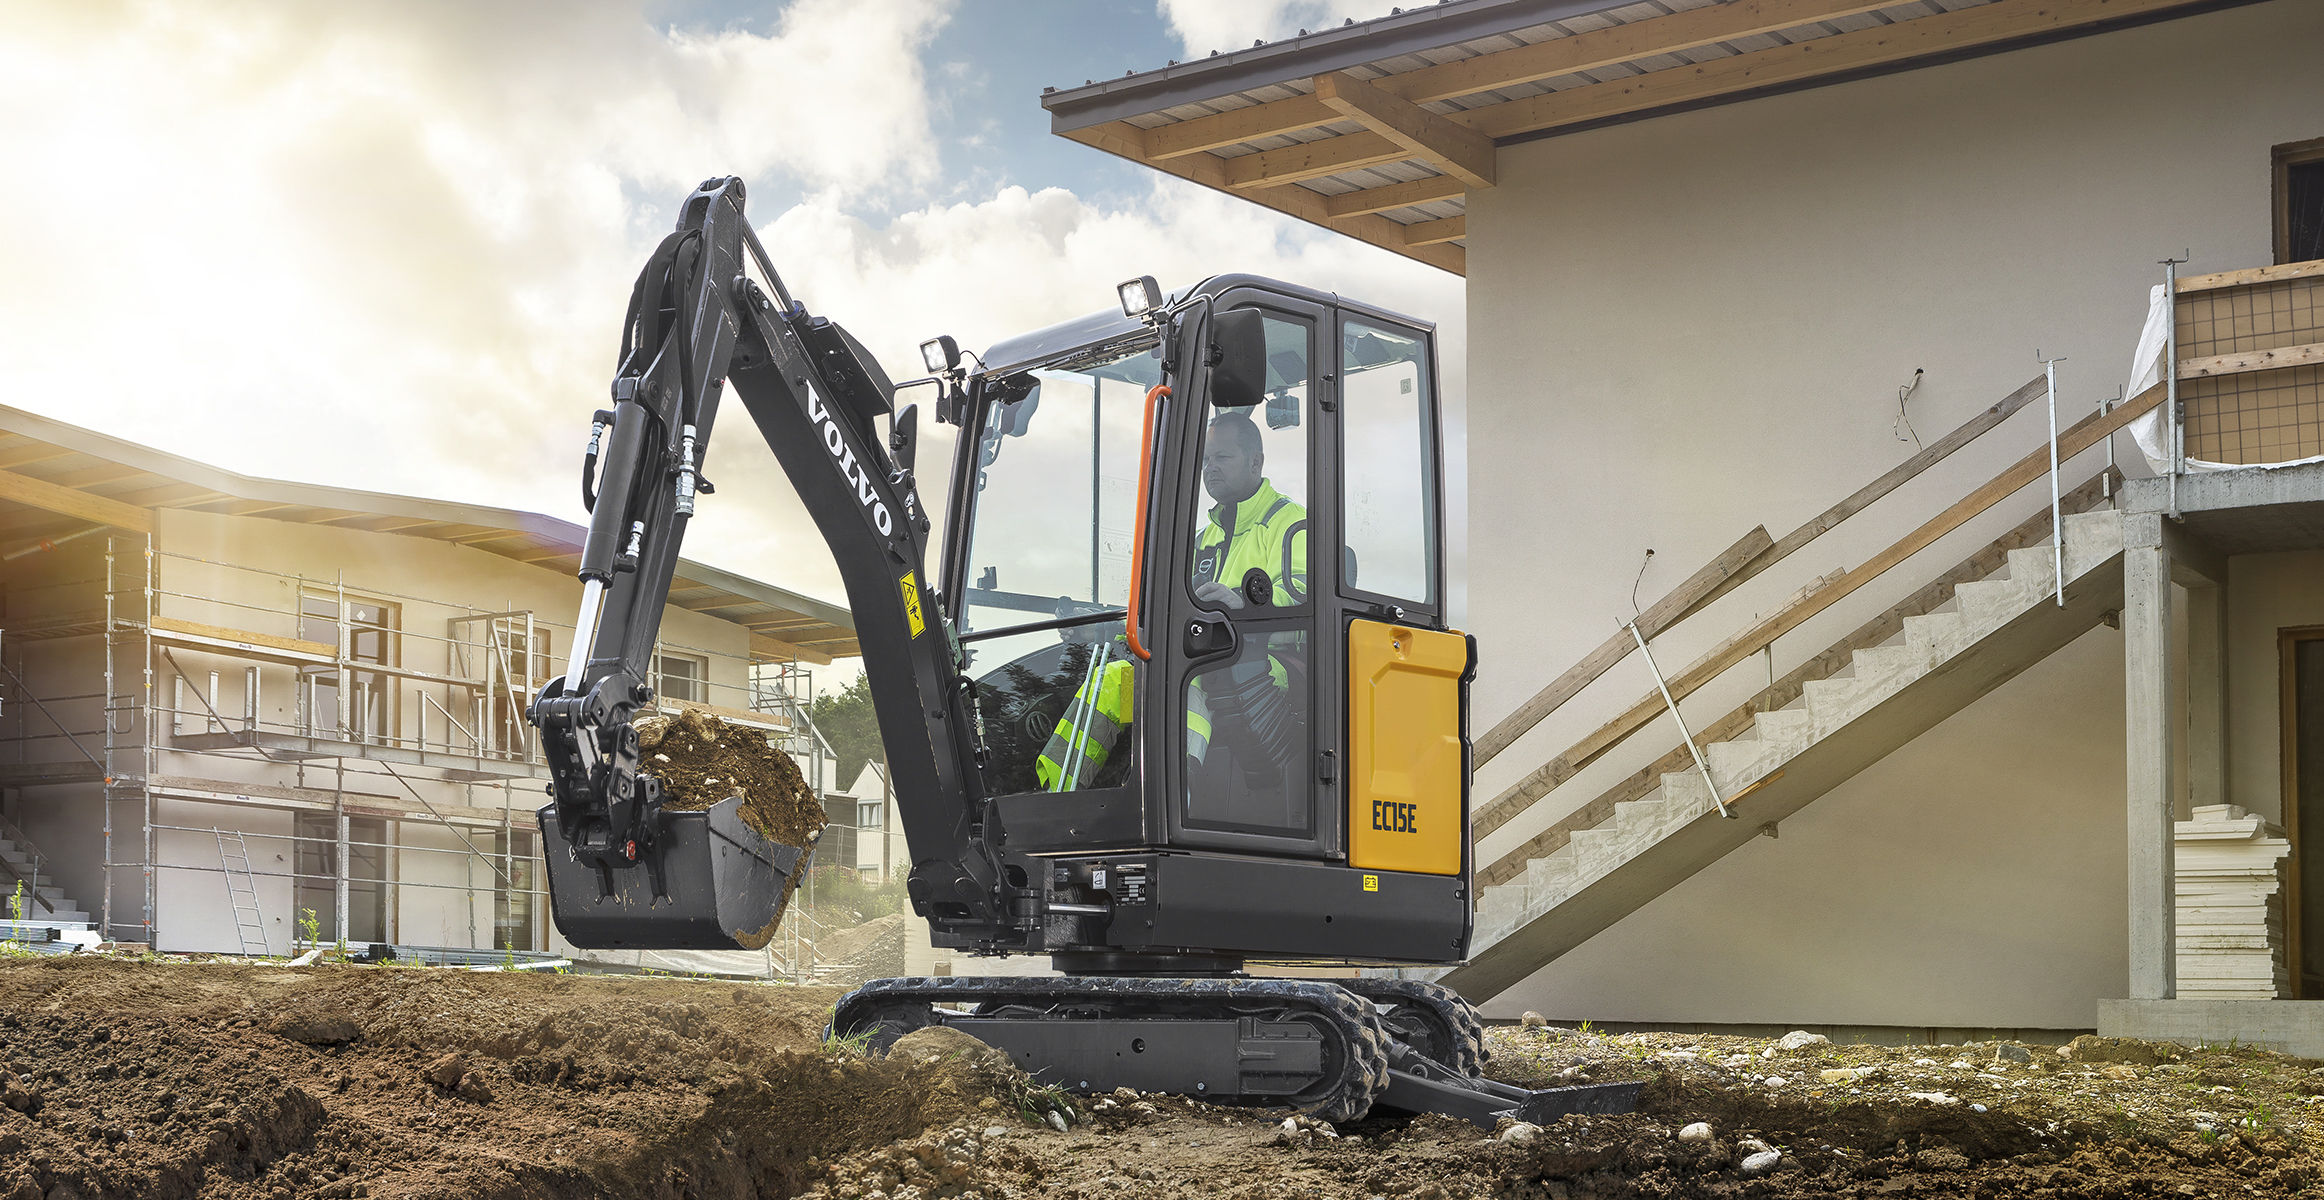 EC15E | Excavators | Overview | Volvo Construction Equipment